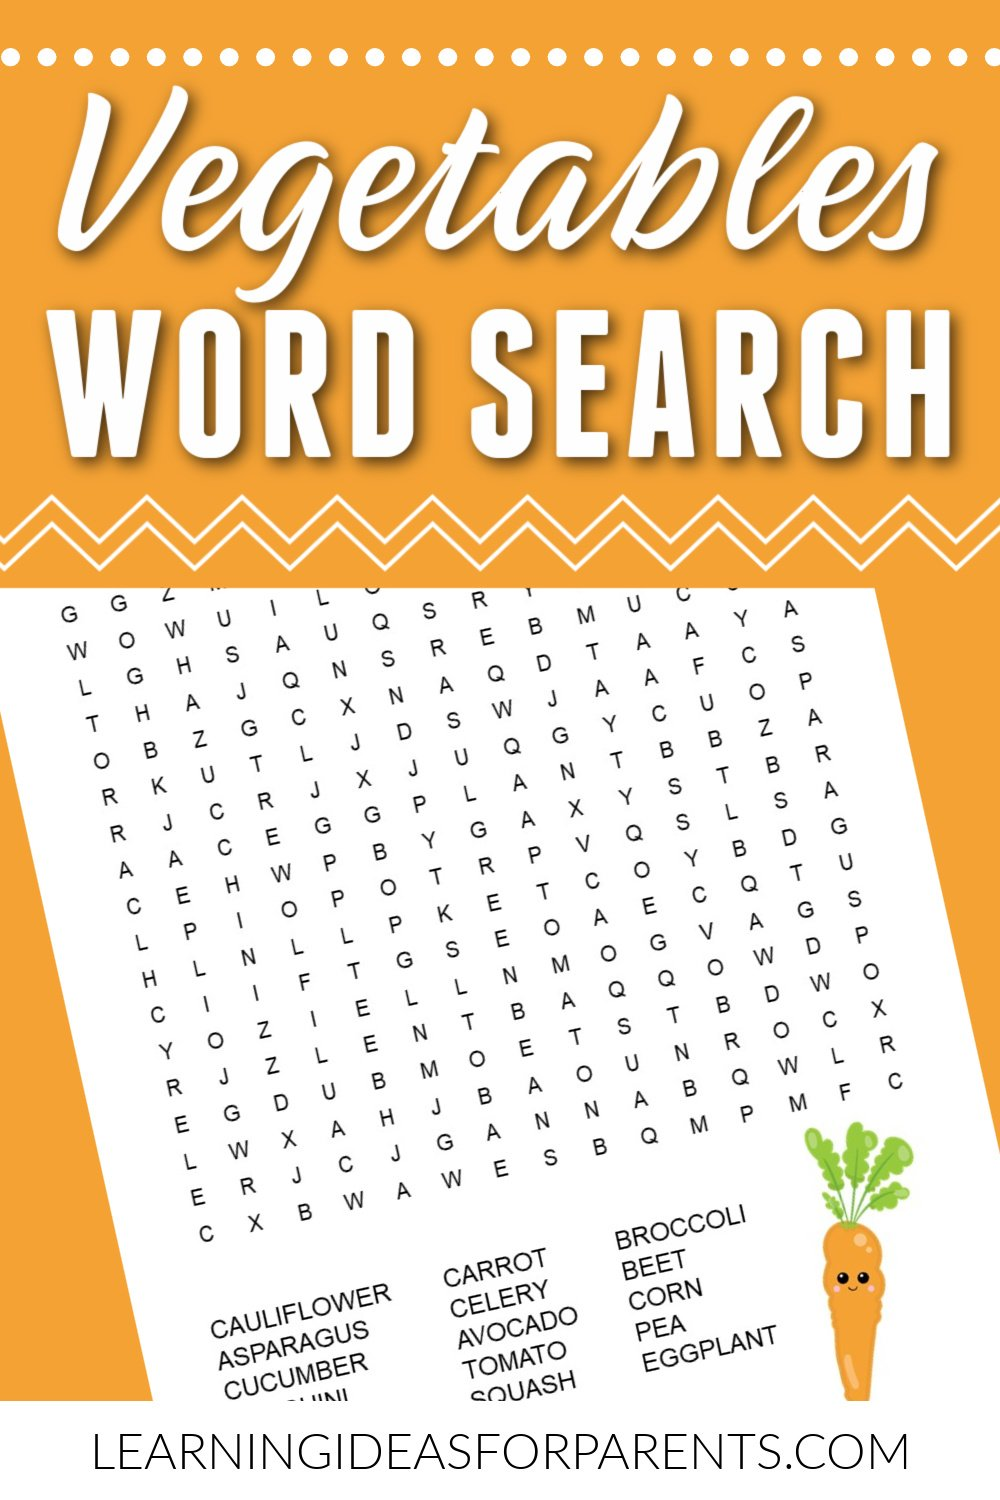 Free printable vegetables word search for kids.